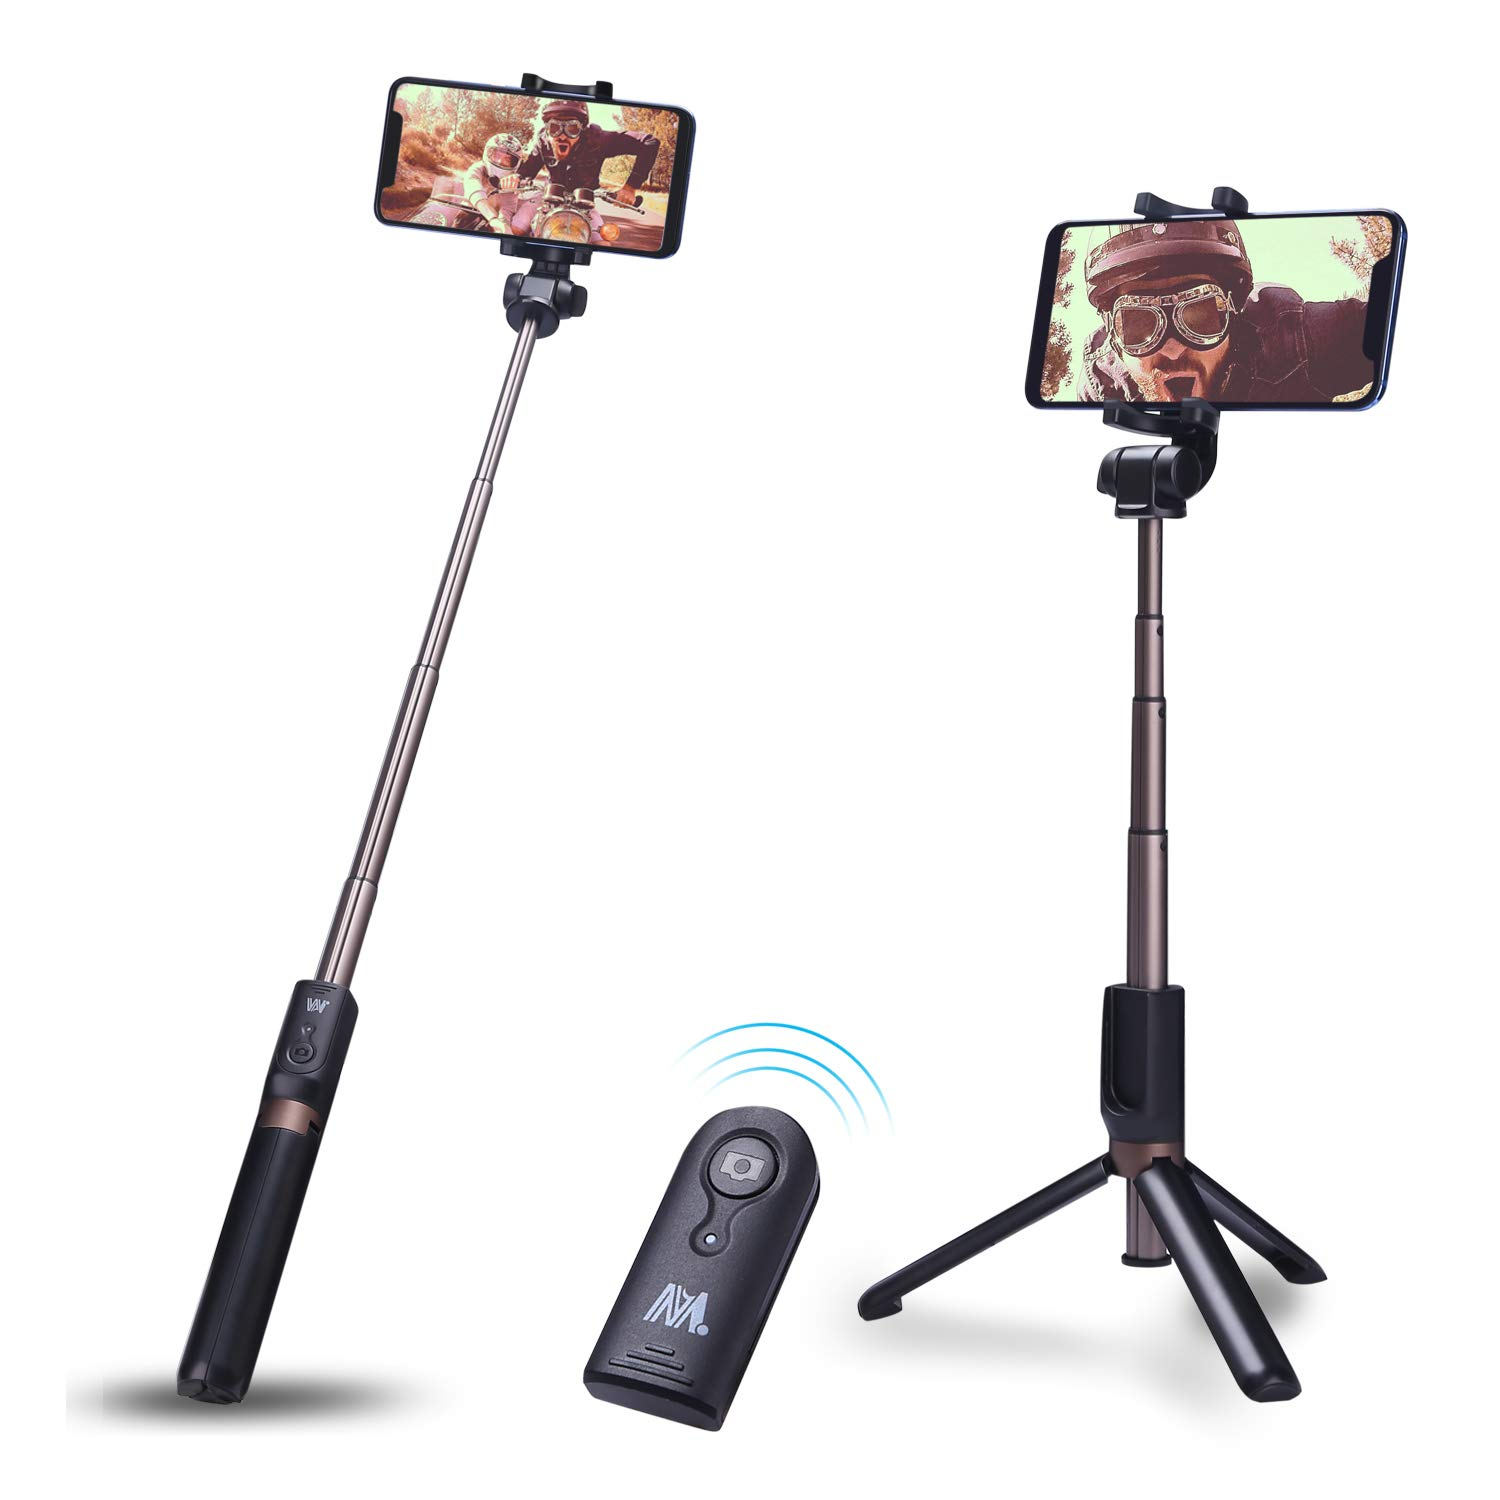 Selfie Stick Bluetooth, Yokkao Selfie Stick Tripod Extendable Foldable Wireless Detachable Remote Compact Portable for Most iOS/Android Smartphone